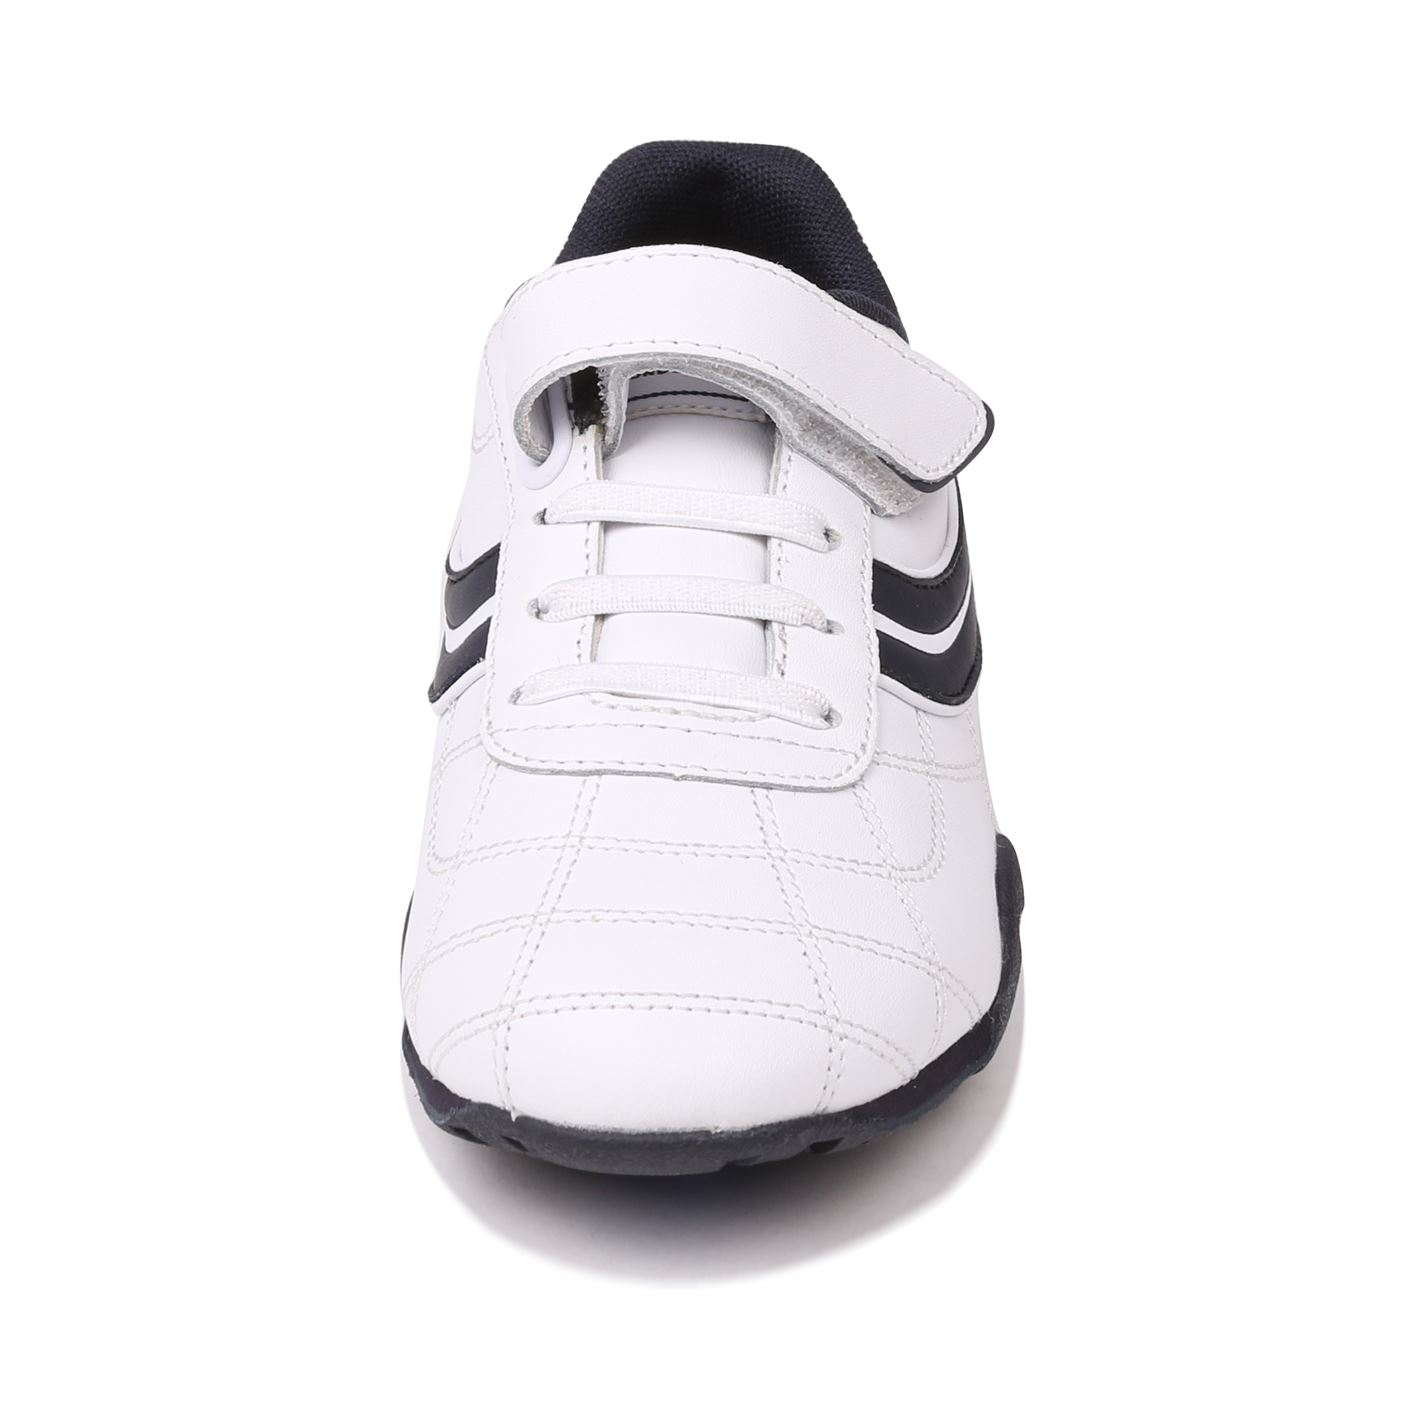 Lonsdale-Kids-Camden-Child-Boys-Trainers-Lace-Up-Casual-Sports-Shoes-Footwear thumbnail 36